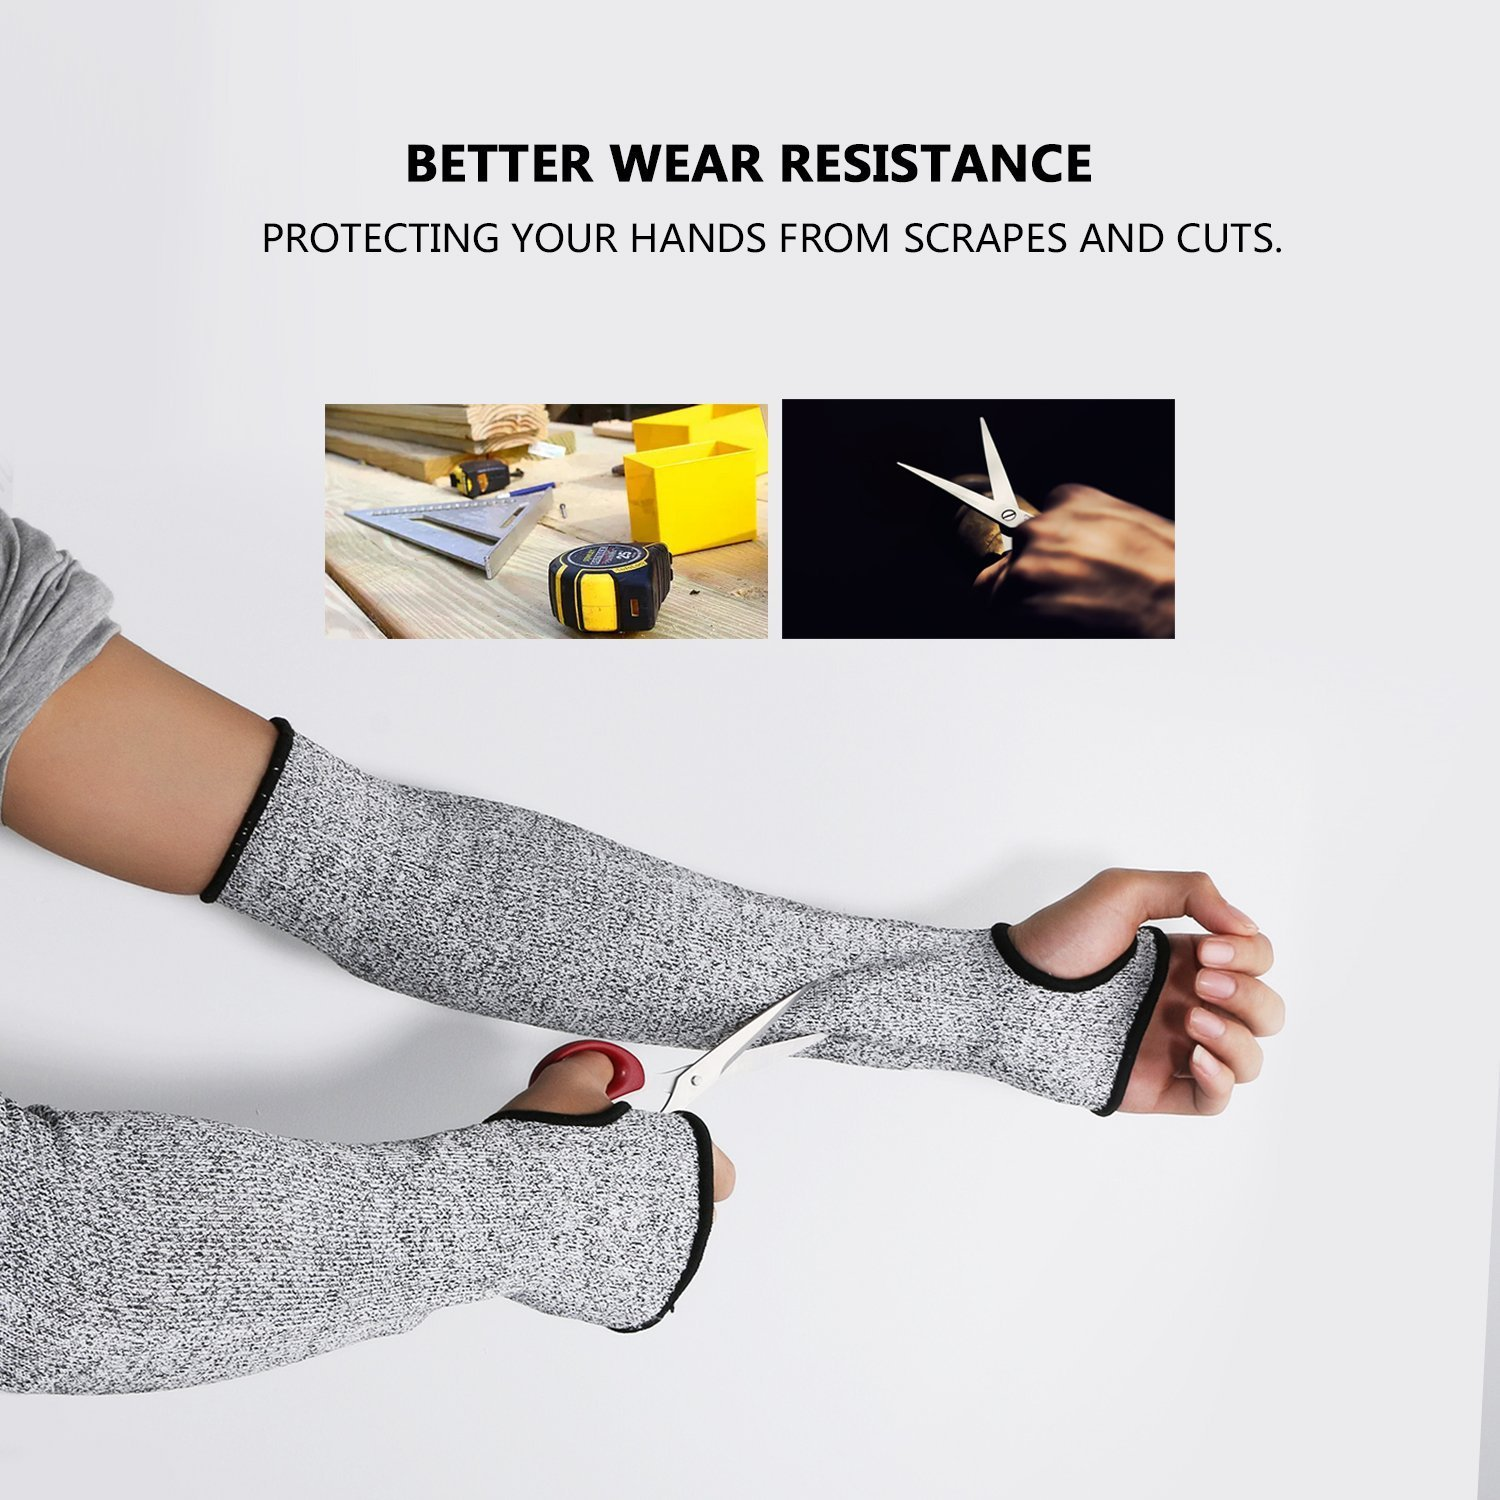 Cut Resistant Sleeves with Thumb Hole, Level 5 Protection, Slash Resistant Safety Protective Arm Sleeves, 14 inch long, Large (Arm width 4-8 inch) sold by Pair(2 Pieces) by G & F Products (Image #9)